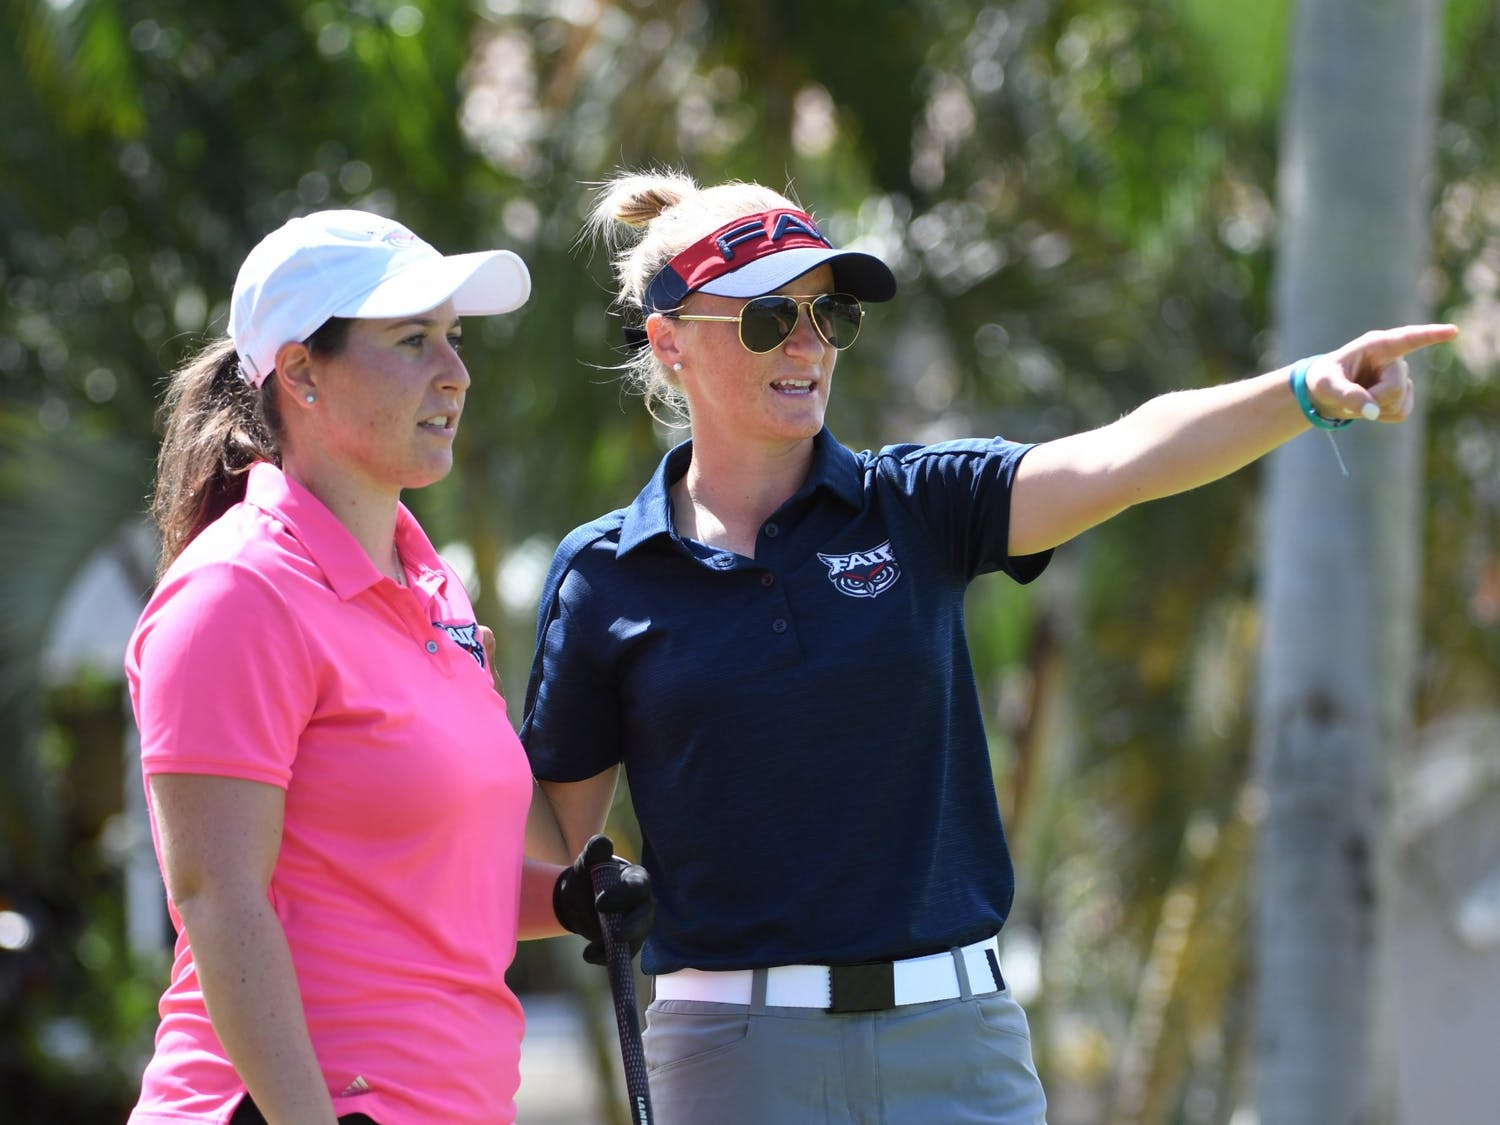 UNC's new women's golf head coach, Aimee Neff (right), smiles at the 2020 FAU Women's Golf Photo Day. Photo courtesy of JC Ridley.